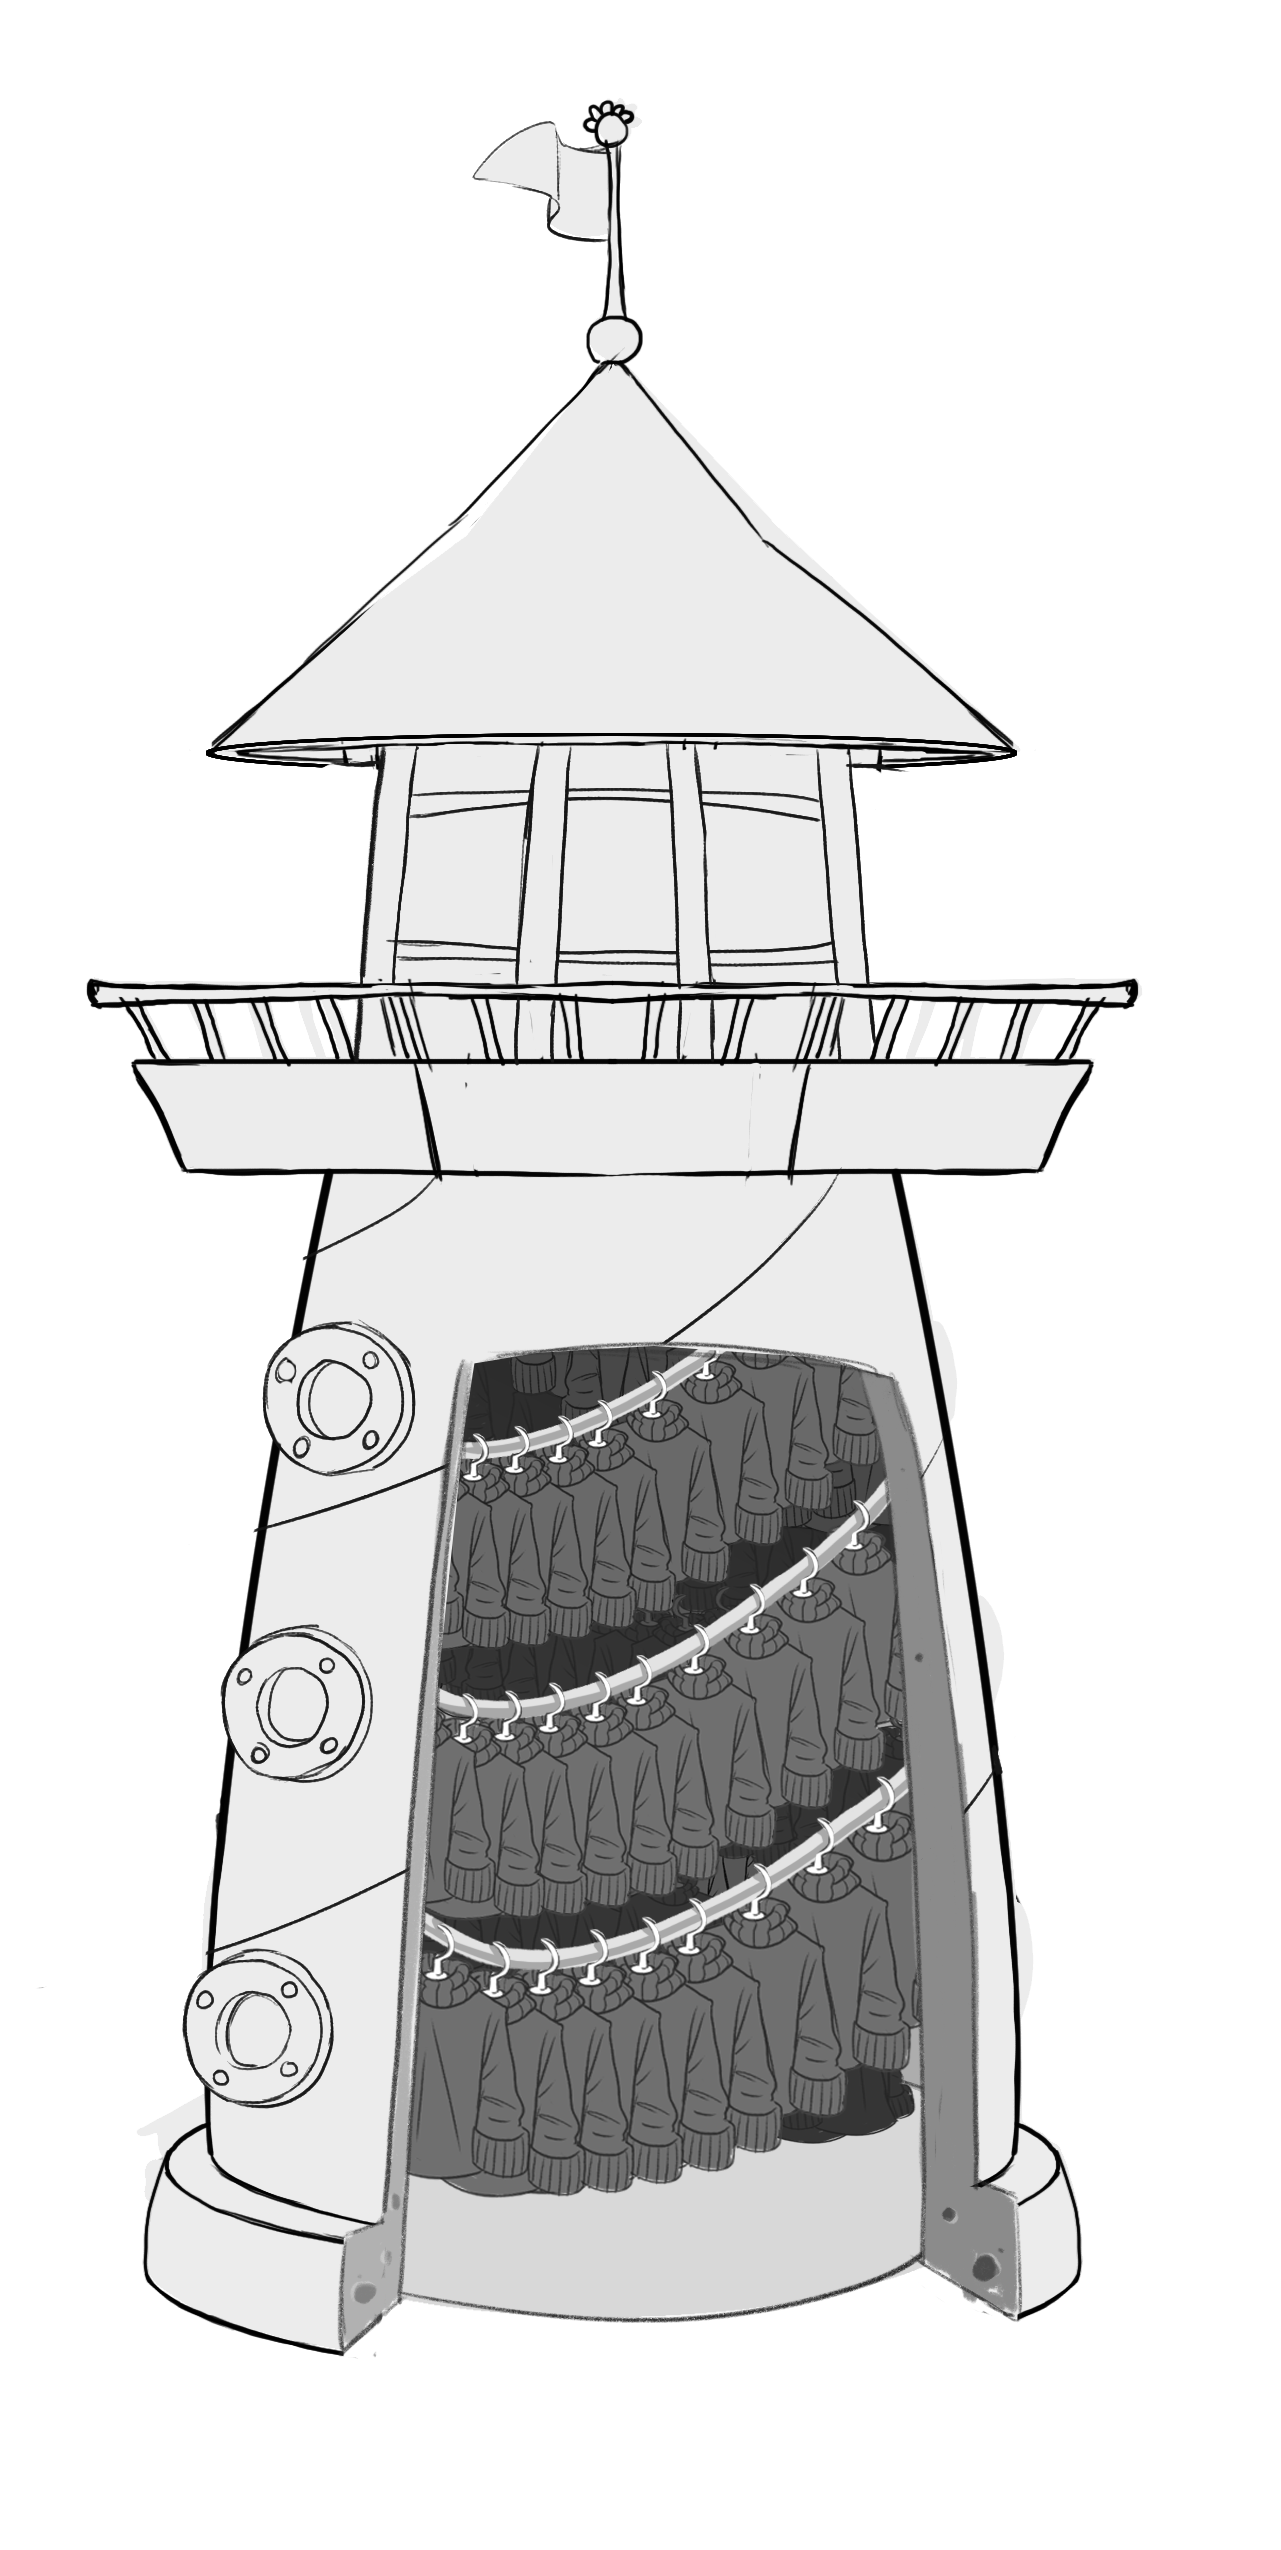 Drawing lighthouse sketch. Image fornewsfeed sweaters png